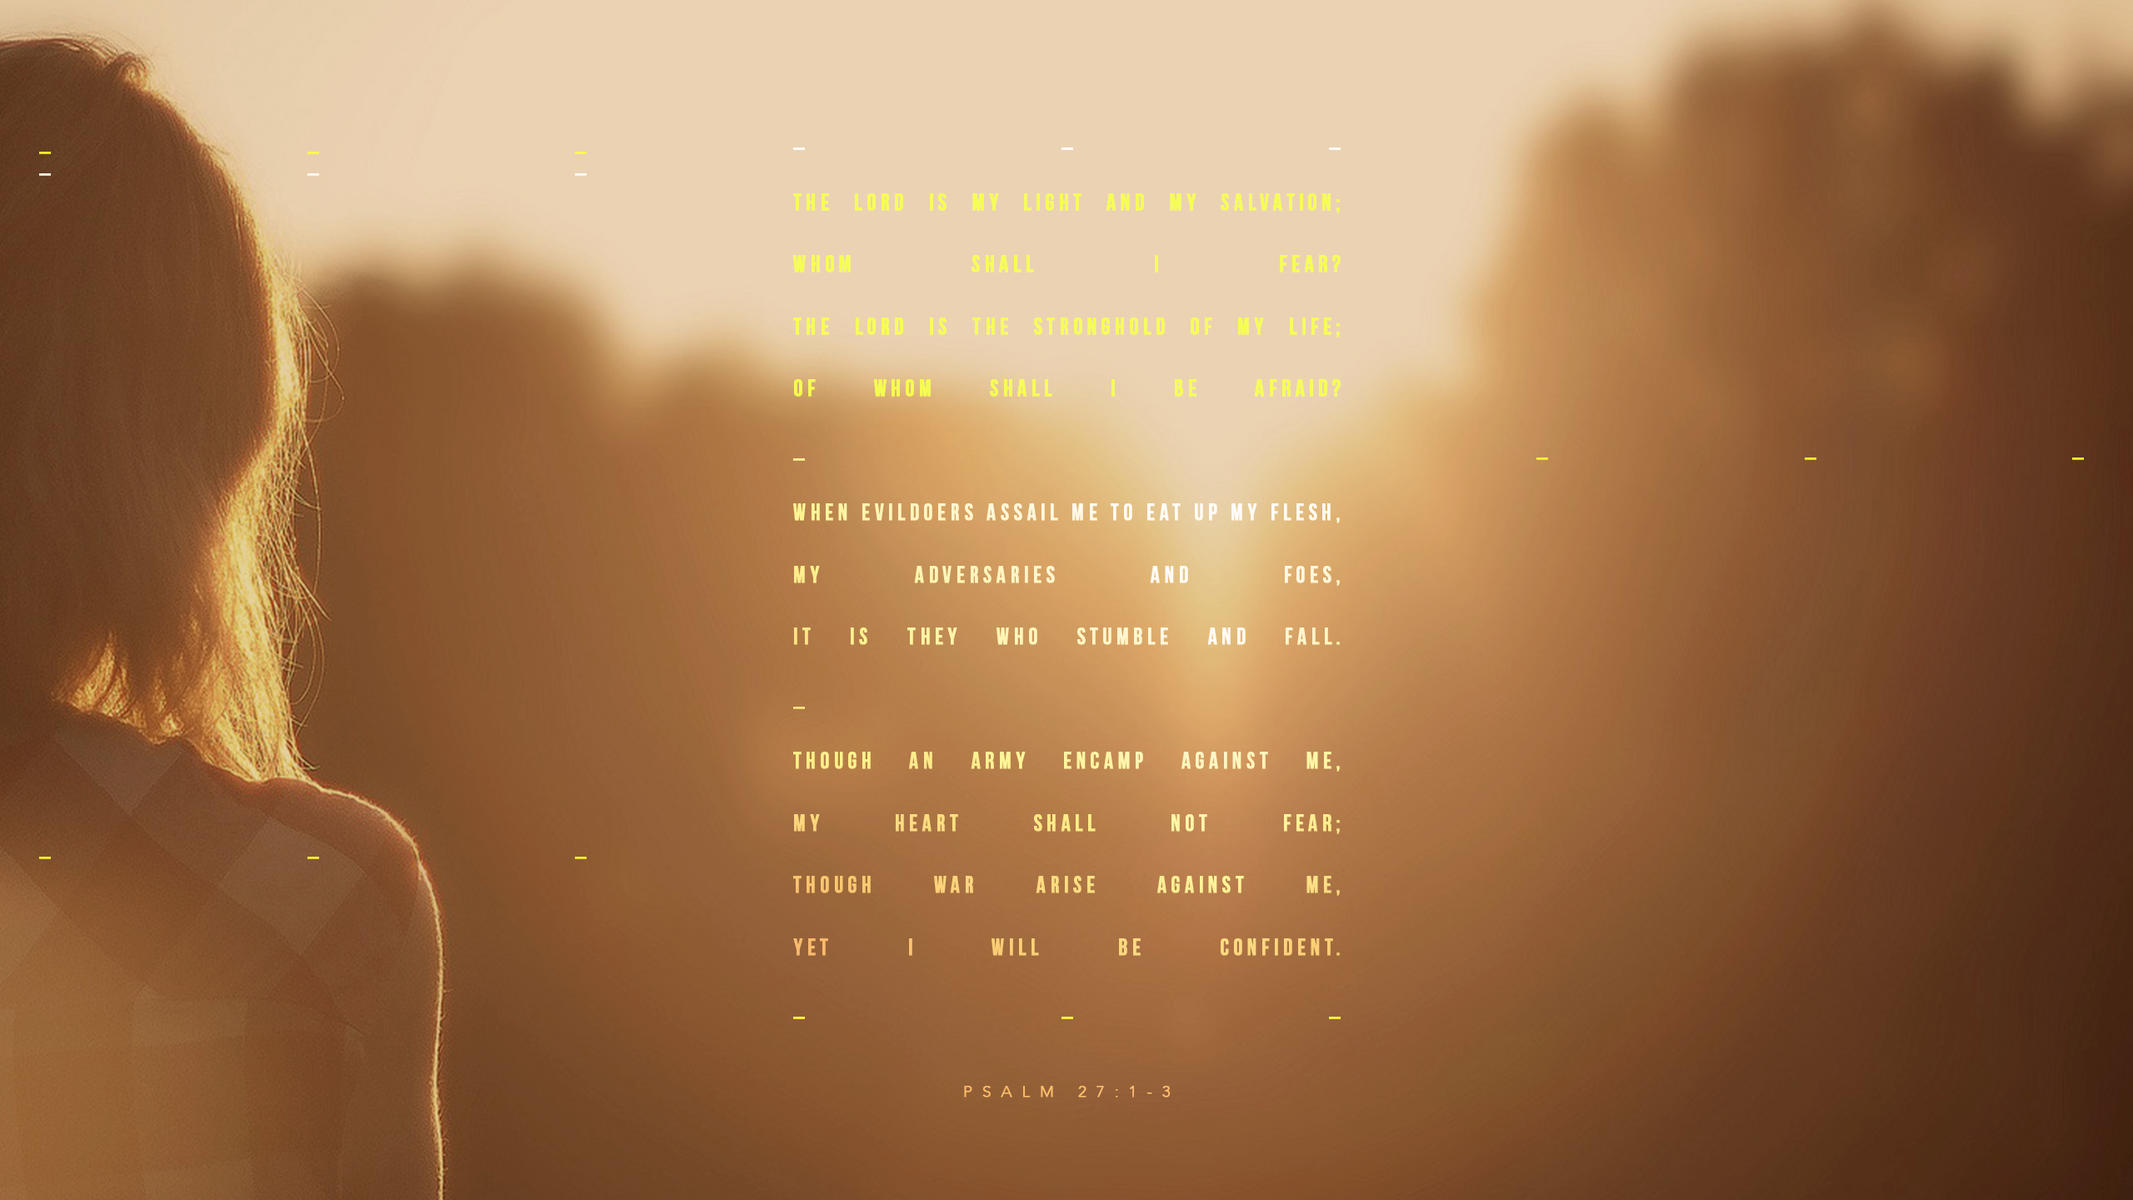 Psalm 27:1-3 - The Verses Project